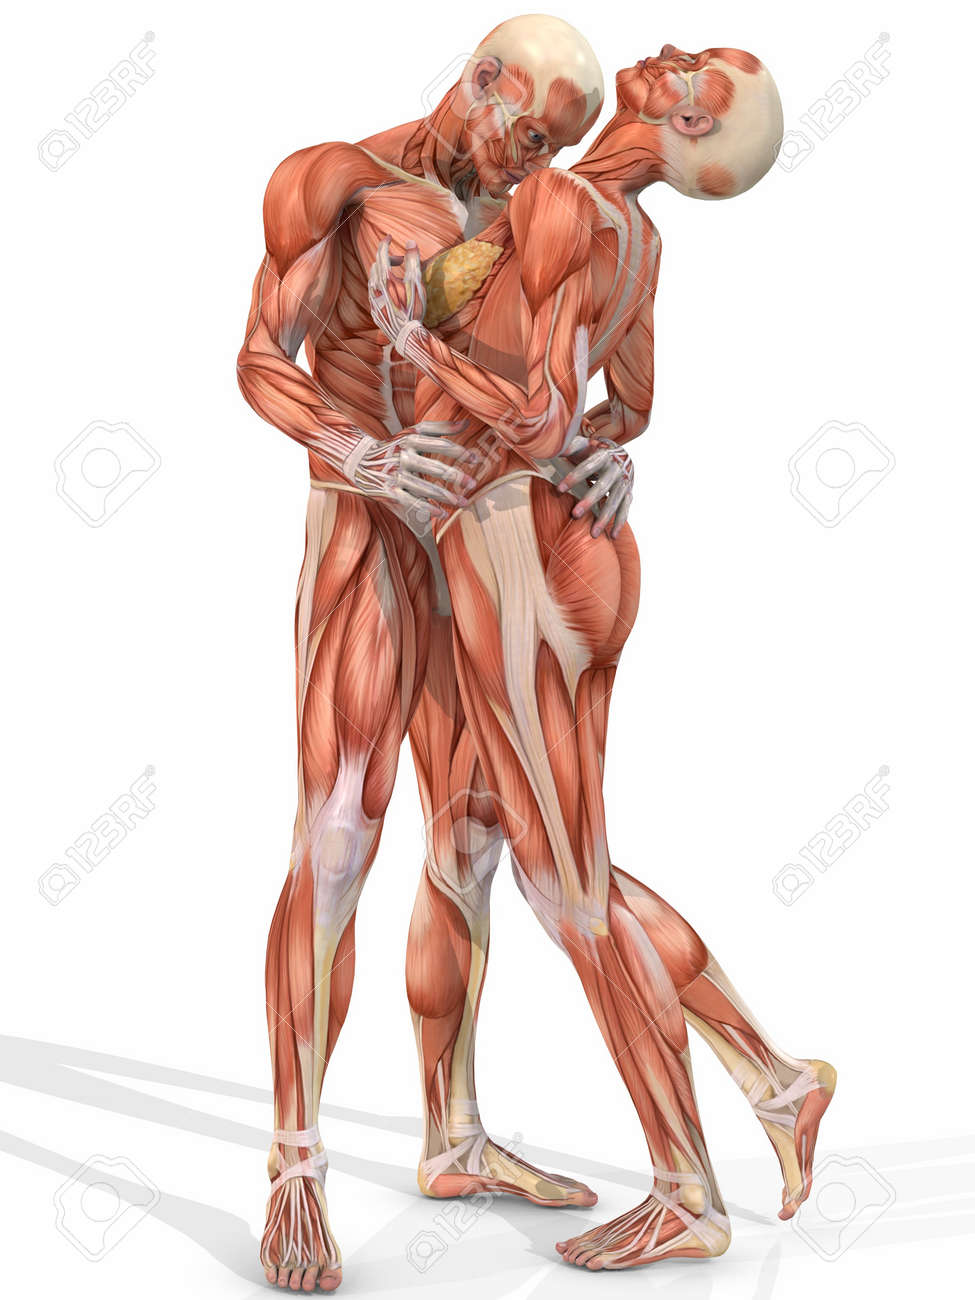 Funky Female And Male Anatomy Collection - Physiology Of Human Body ...